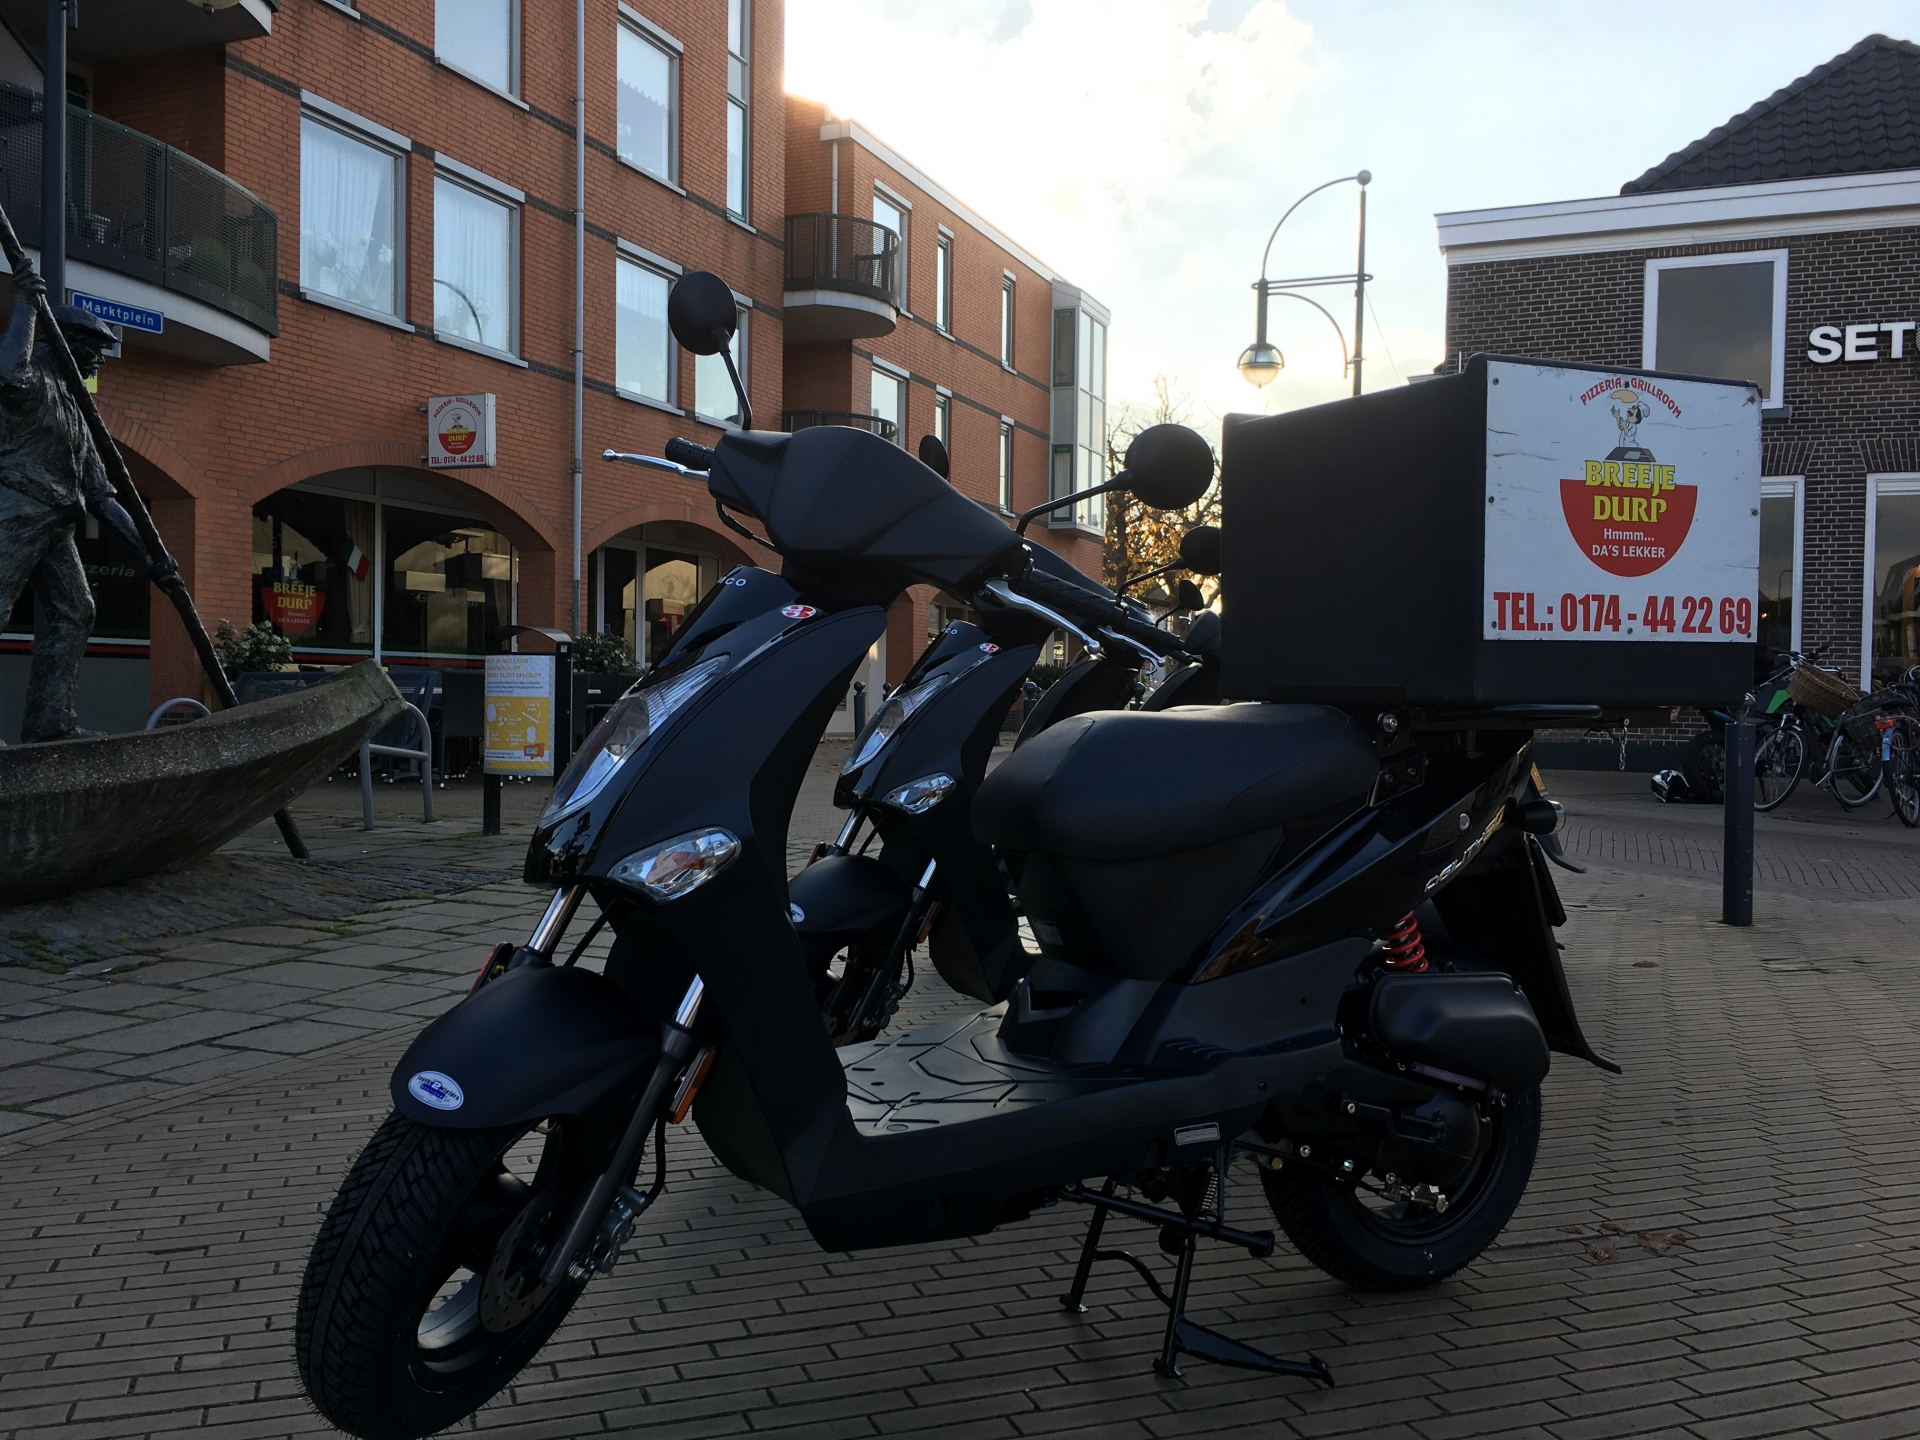 kymco-agility-bromscooter-beerjedurp-pizzeria-bezorgscooter-scooterwinkel-westland-transportscooter-like-people-sento-tt-snorscooter-kymcodealer